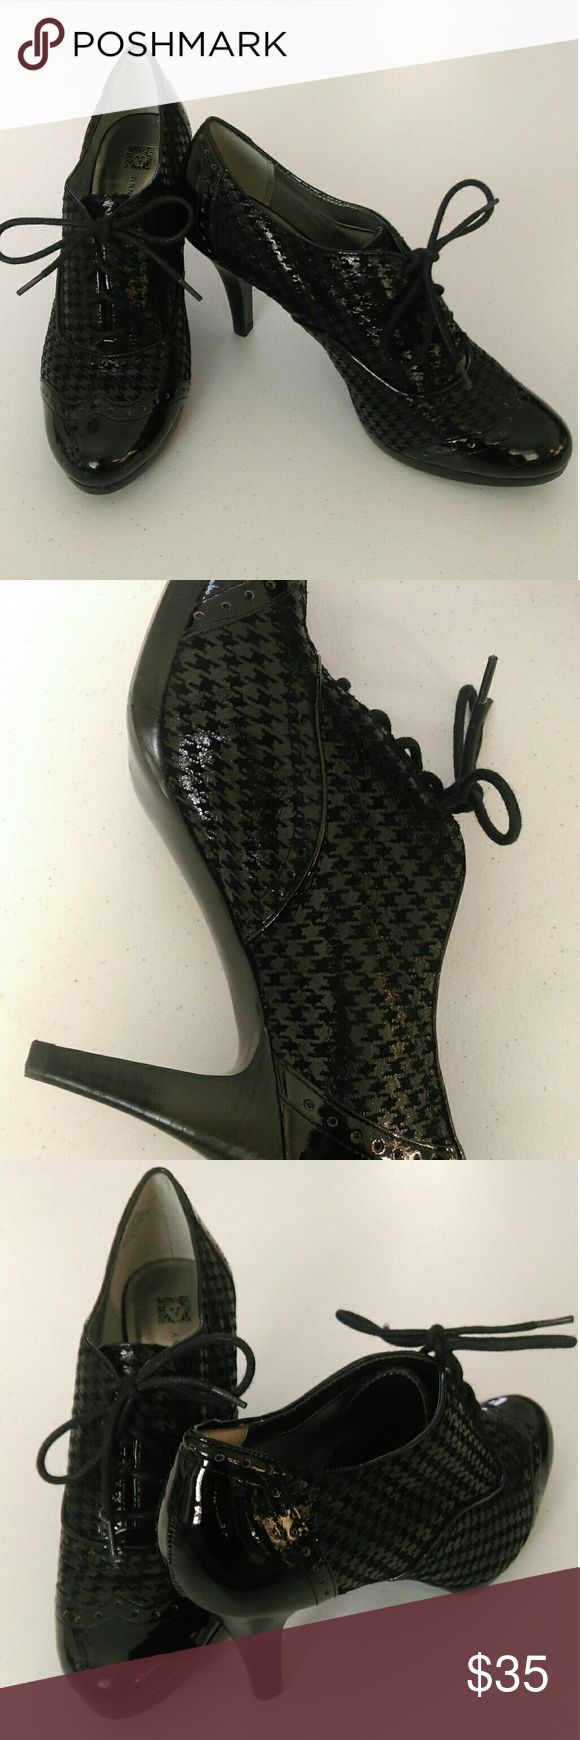 Patent High Heels All black patent shoes with a twist....high heels! They are trimmed with a very shiny black material. The body of the shoe is houndstooth patterned with the same shiny black material along with a velvety material. Some light wear on the bottom, but still in overall fabulous condition! These shoes make a statement while also looking savvy and classy.  Size 8 1/2 Ann Klein Shoes Heels #blackhighheelsshiny